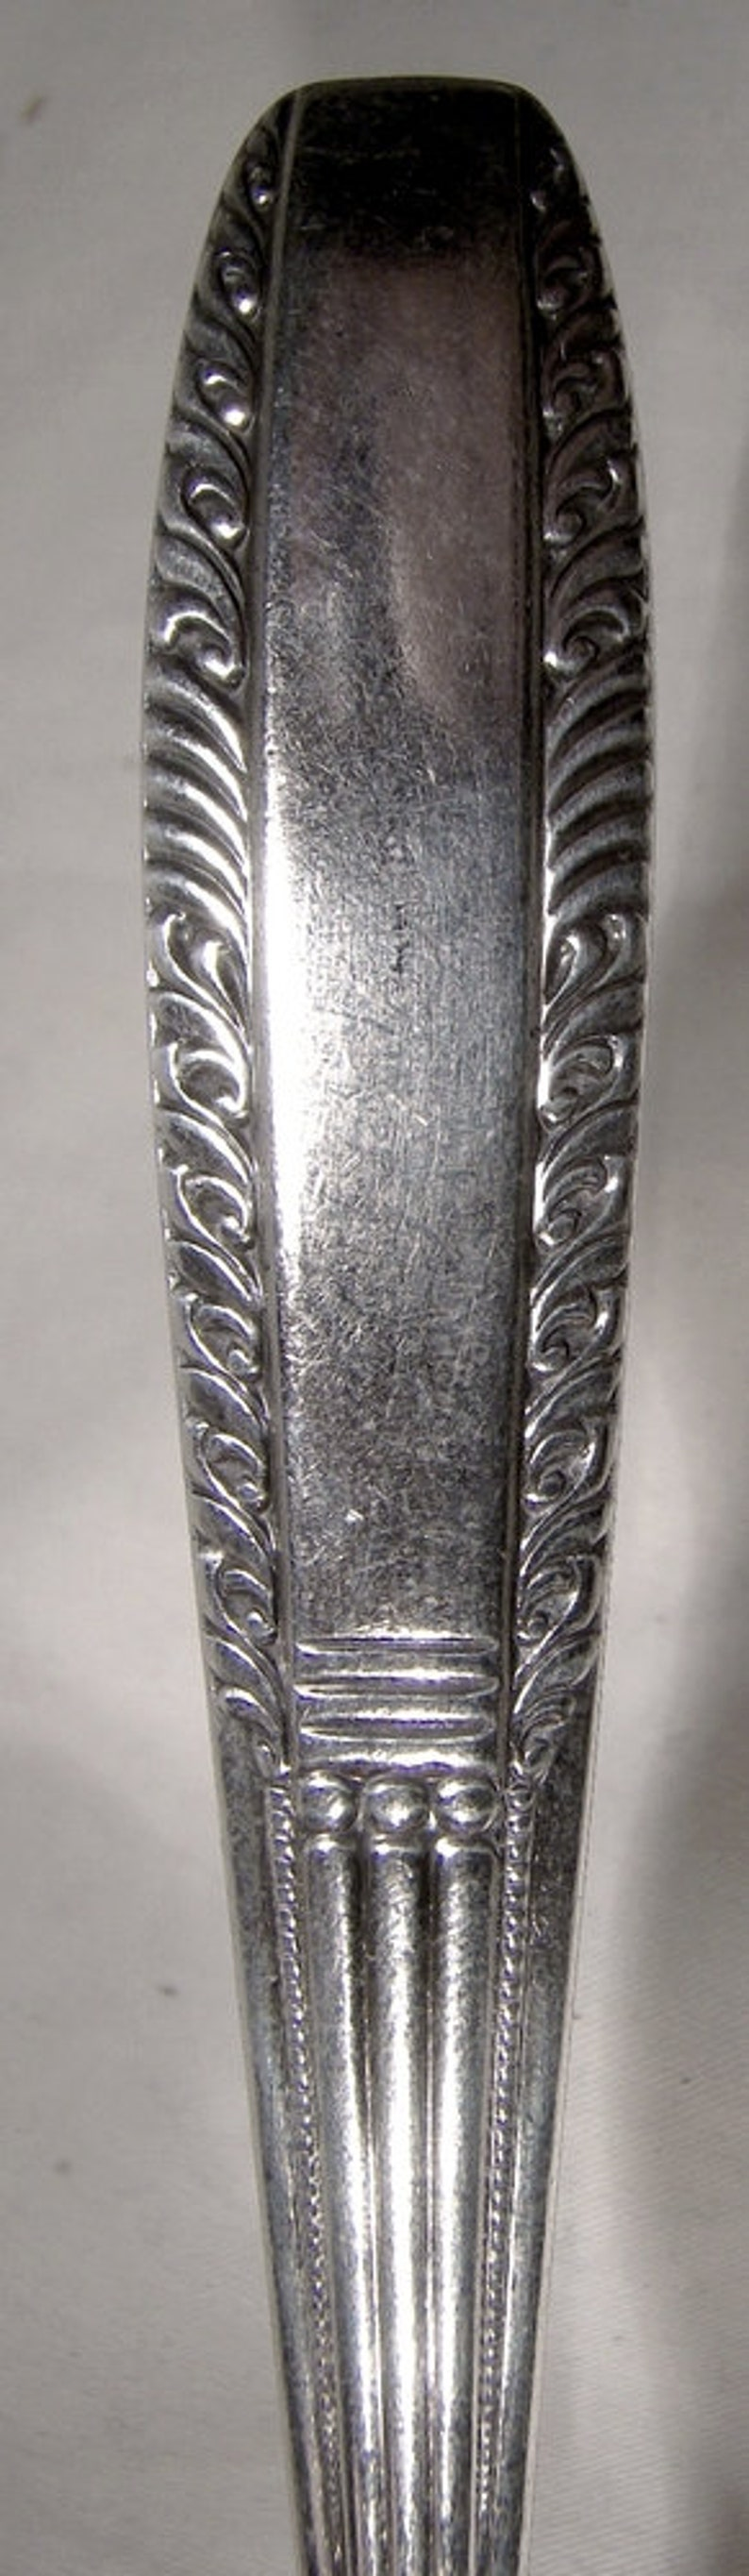 Wallace Sharon Silver Plated 8-18 Medium Solid Cold Meat Serving Fork 1926